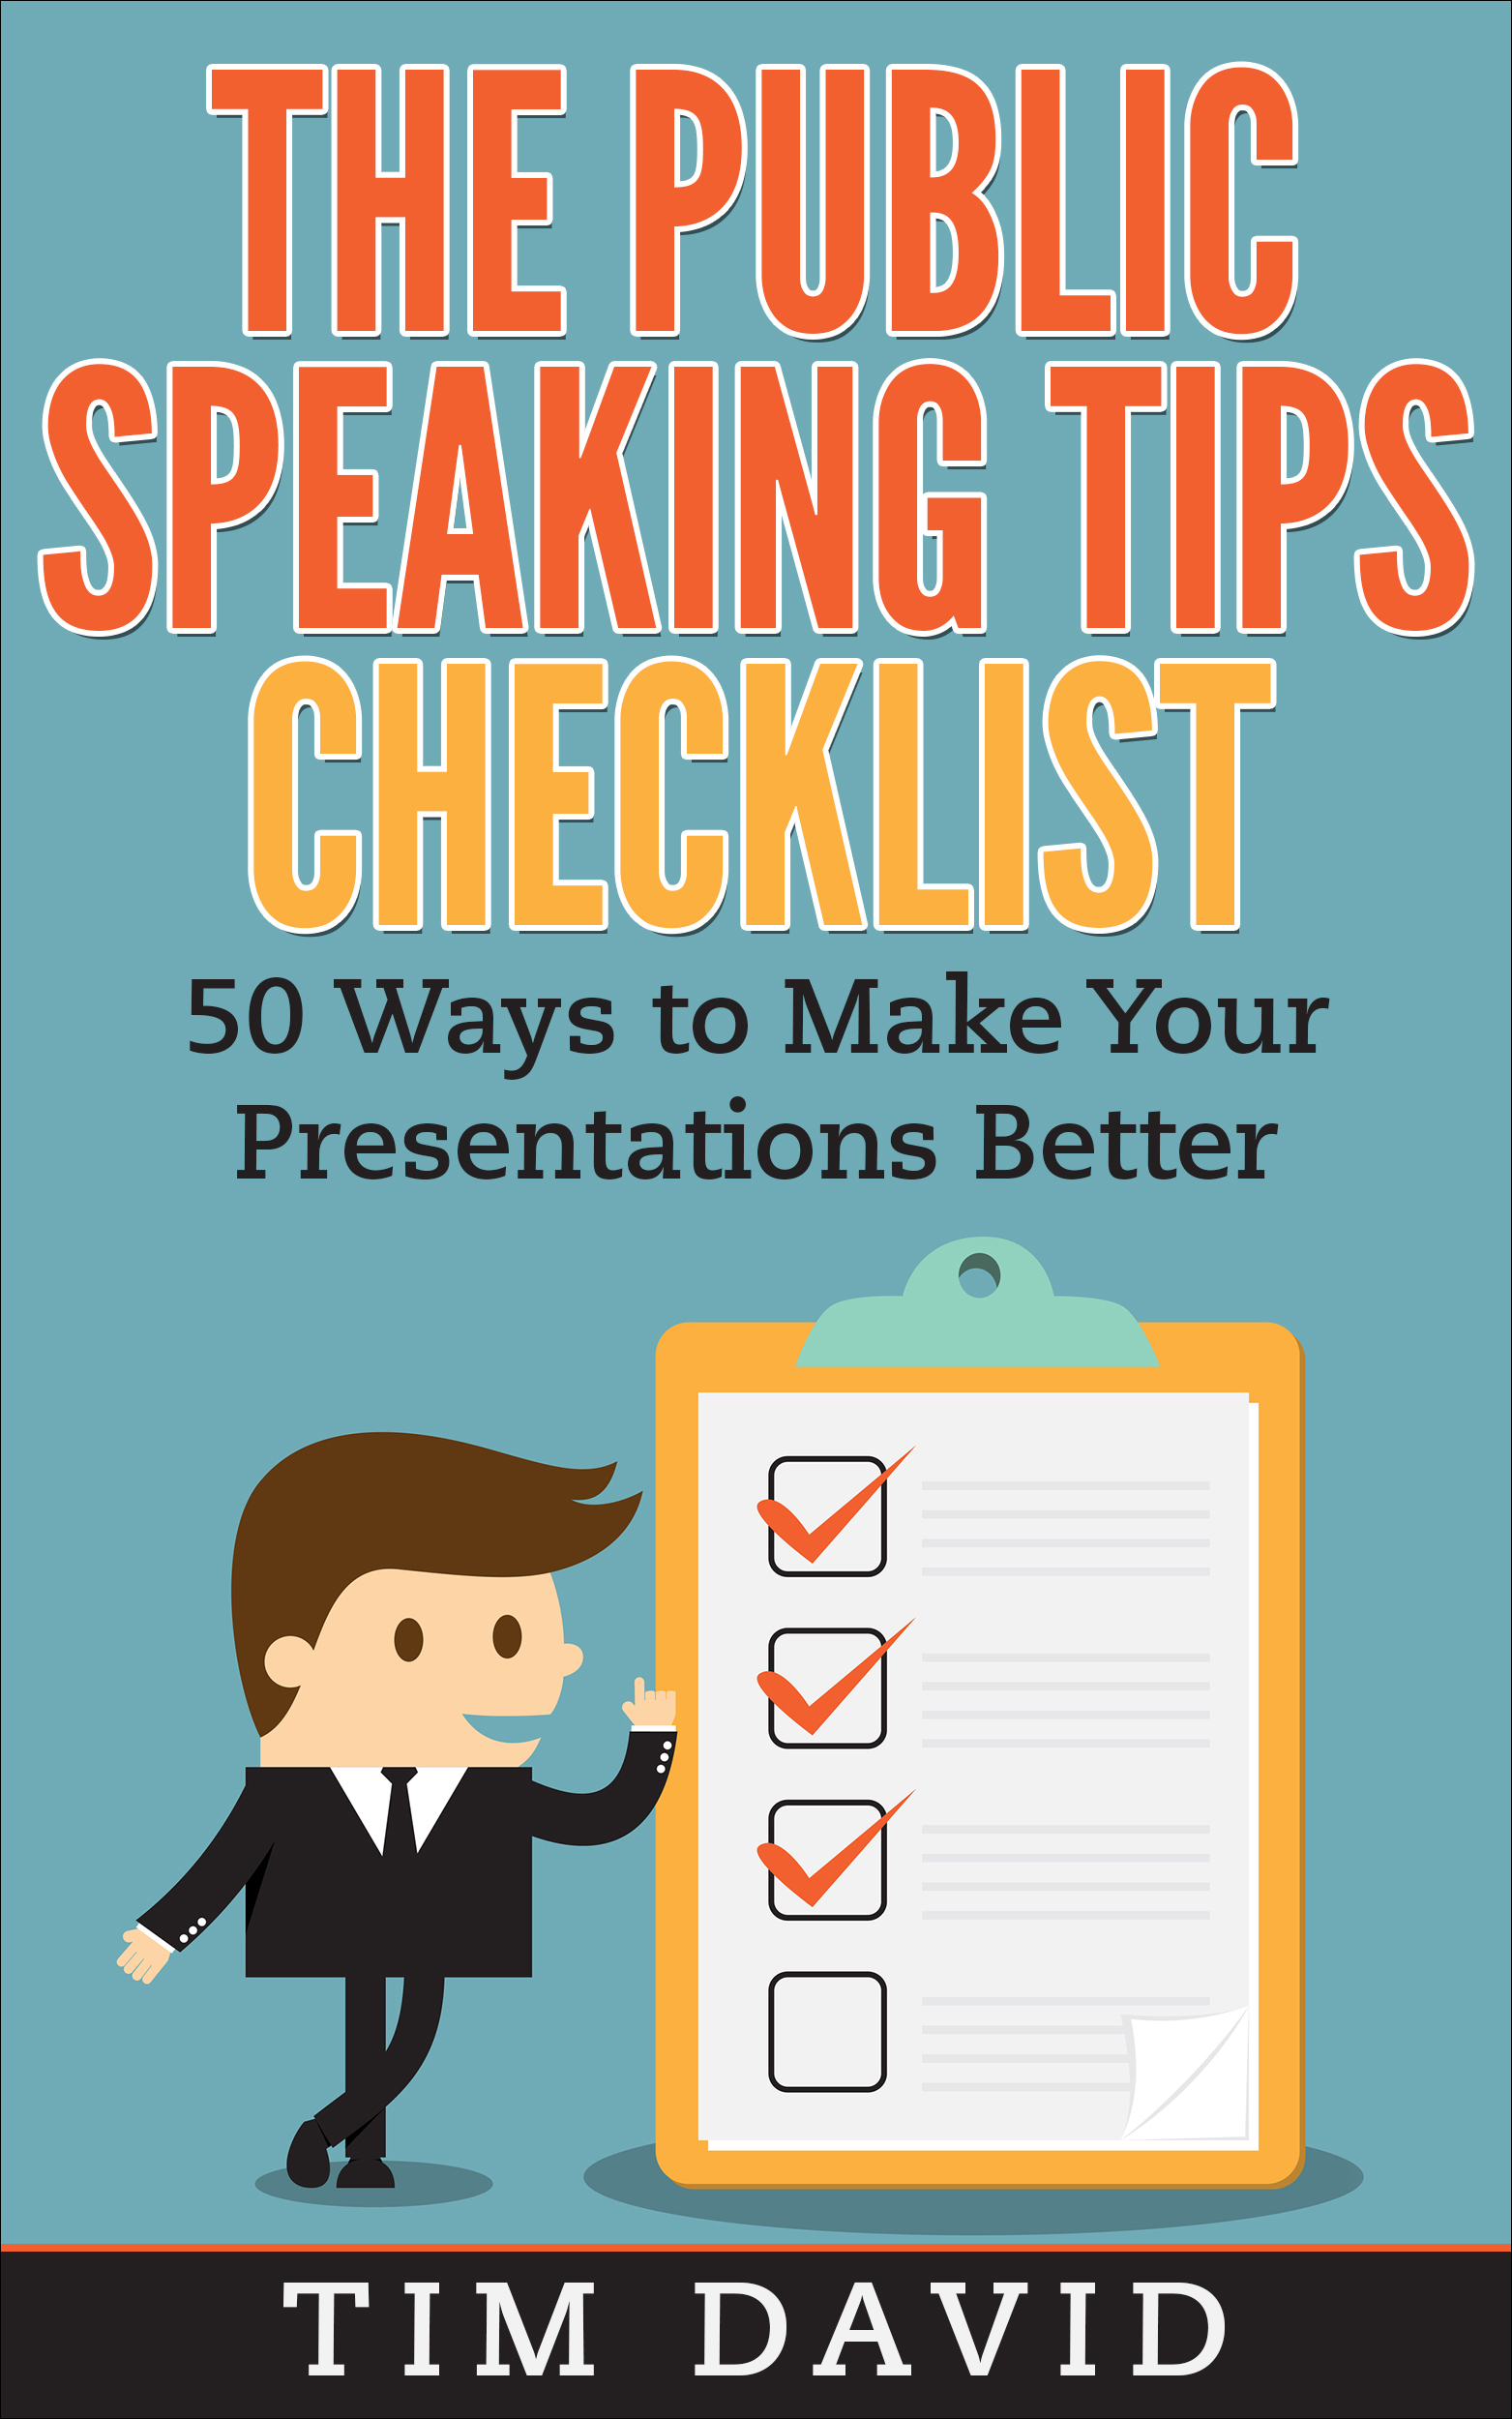 The_Public_Speaking_Tips_Checklist.jpg